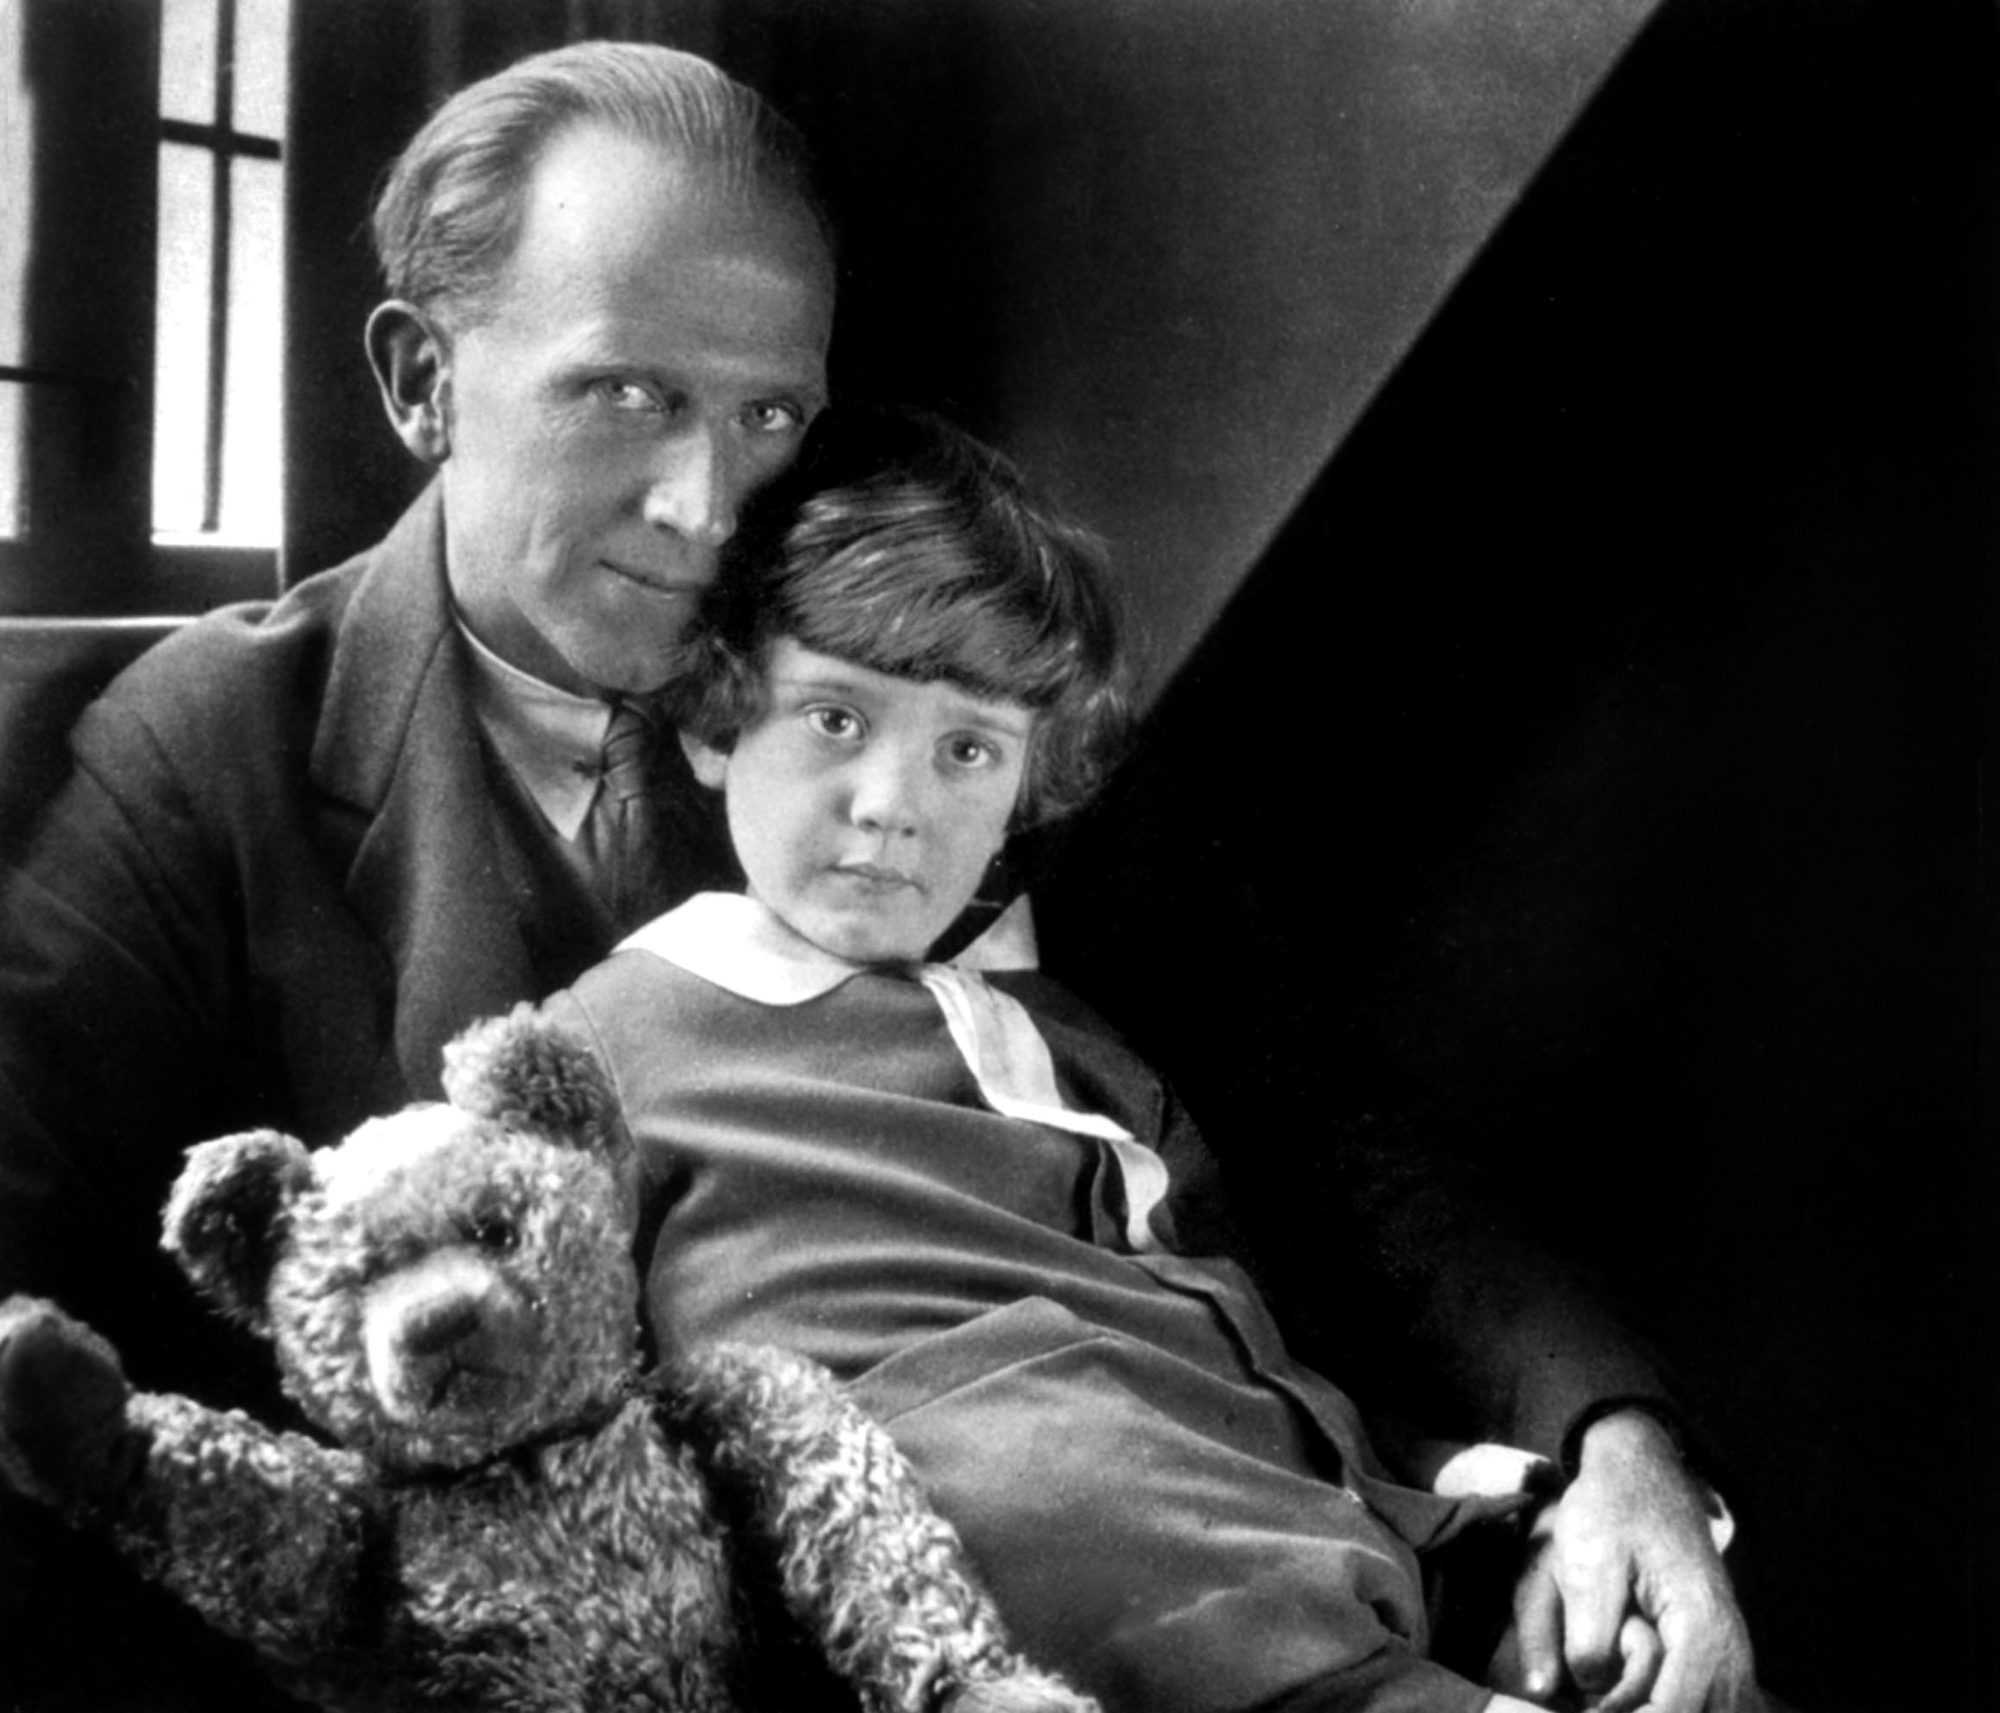 real christopher robin hated winnie the pooh